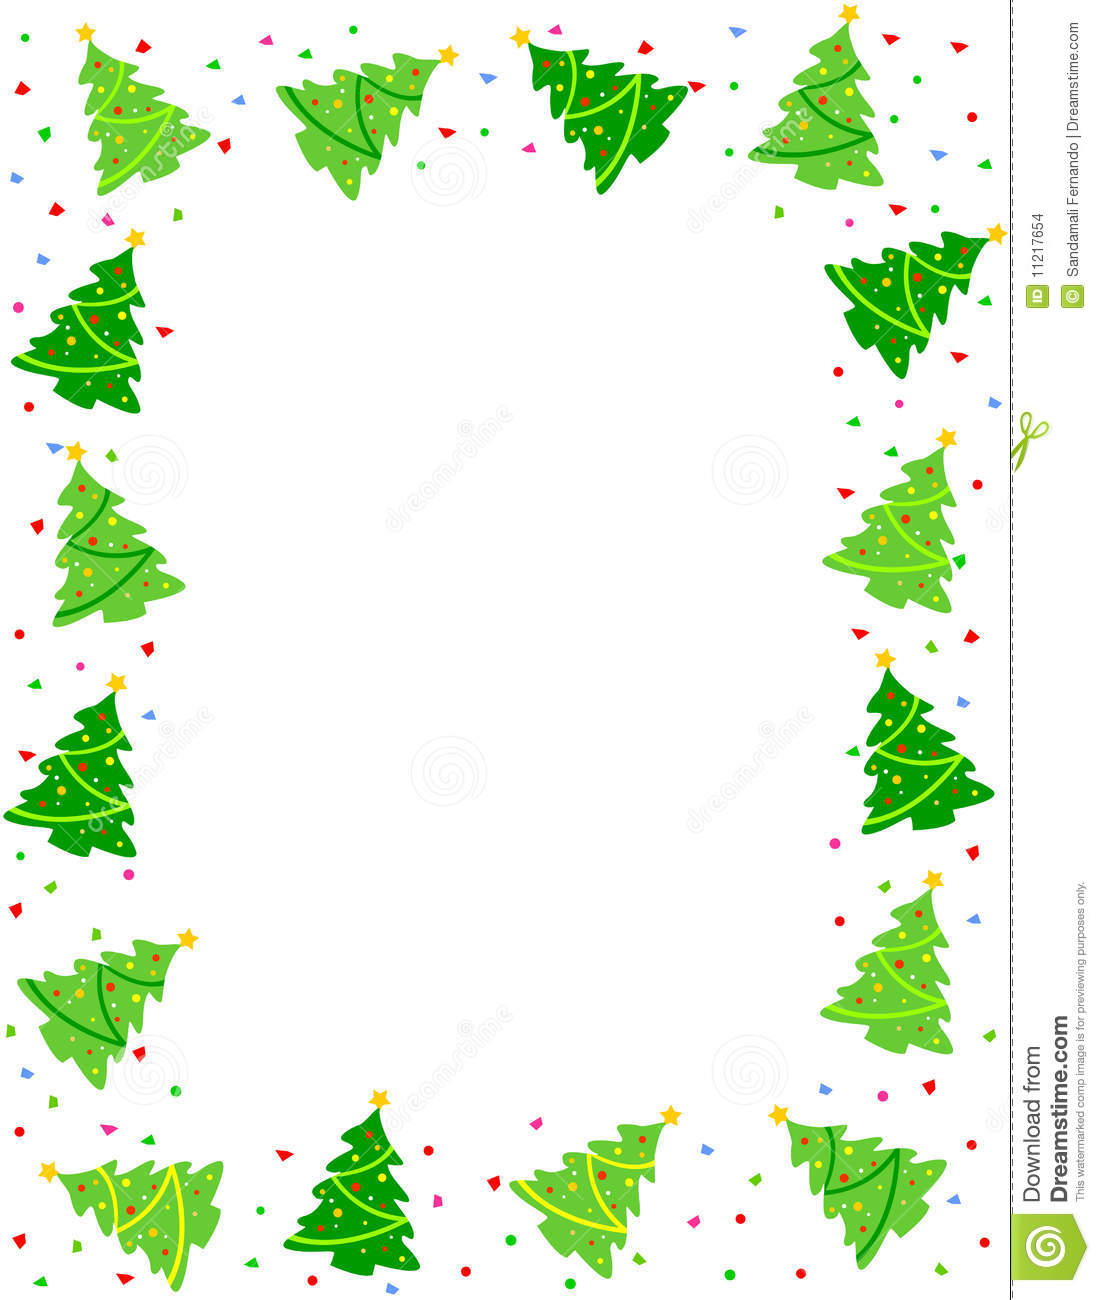 Christmas Borders Clipart.14 Christmas Border Clipart Clipartlo 723788 Png